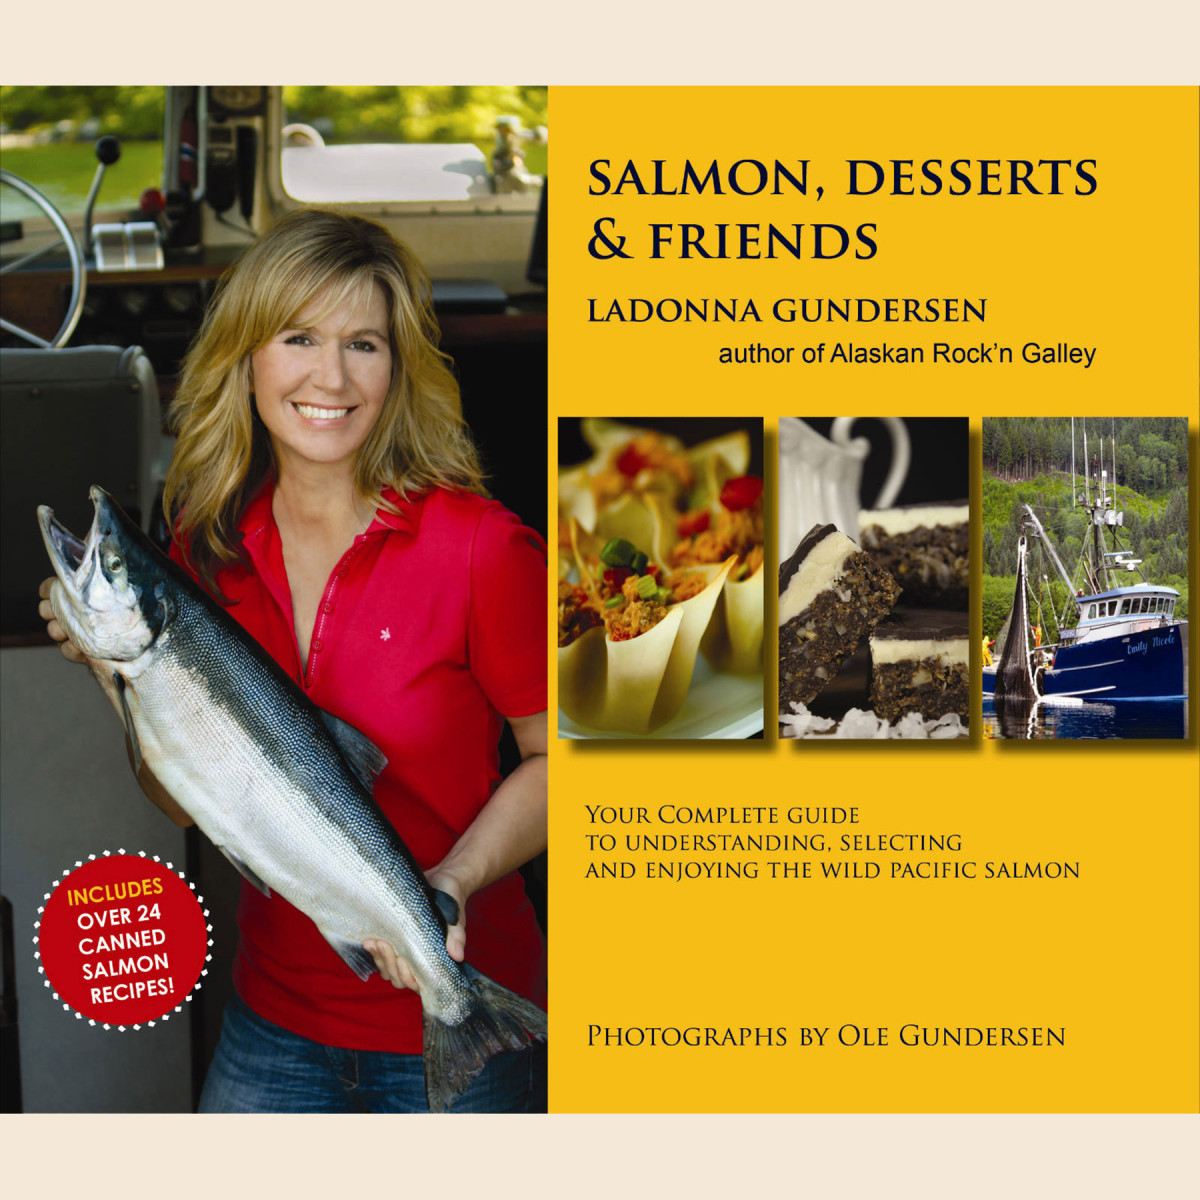 Find this recipe and many others in Gundersen's Salmon, Desserts & Friends cookbook. Available at Amazon, Barnes & Noble, Fine Edge and other stores worldwide.